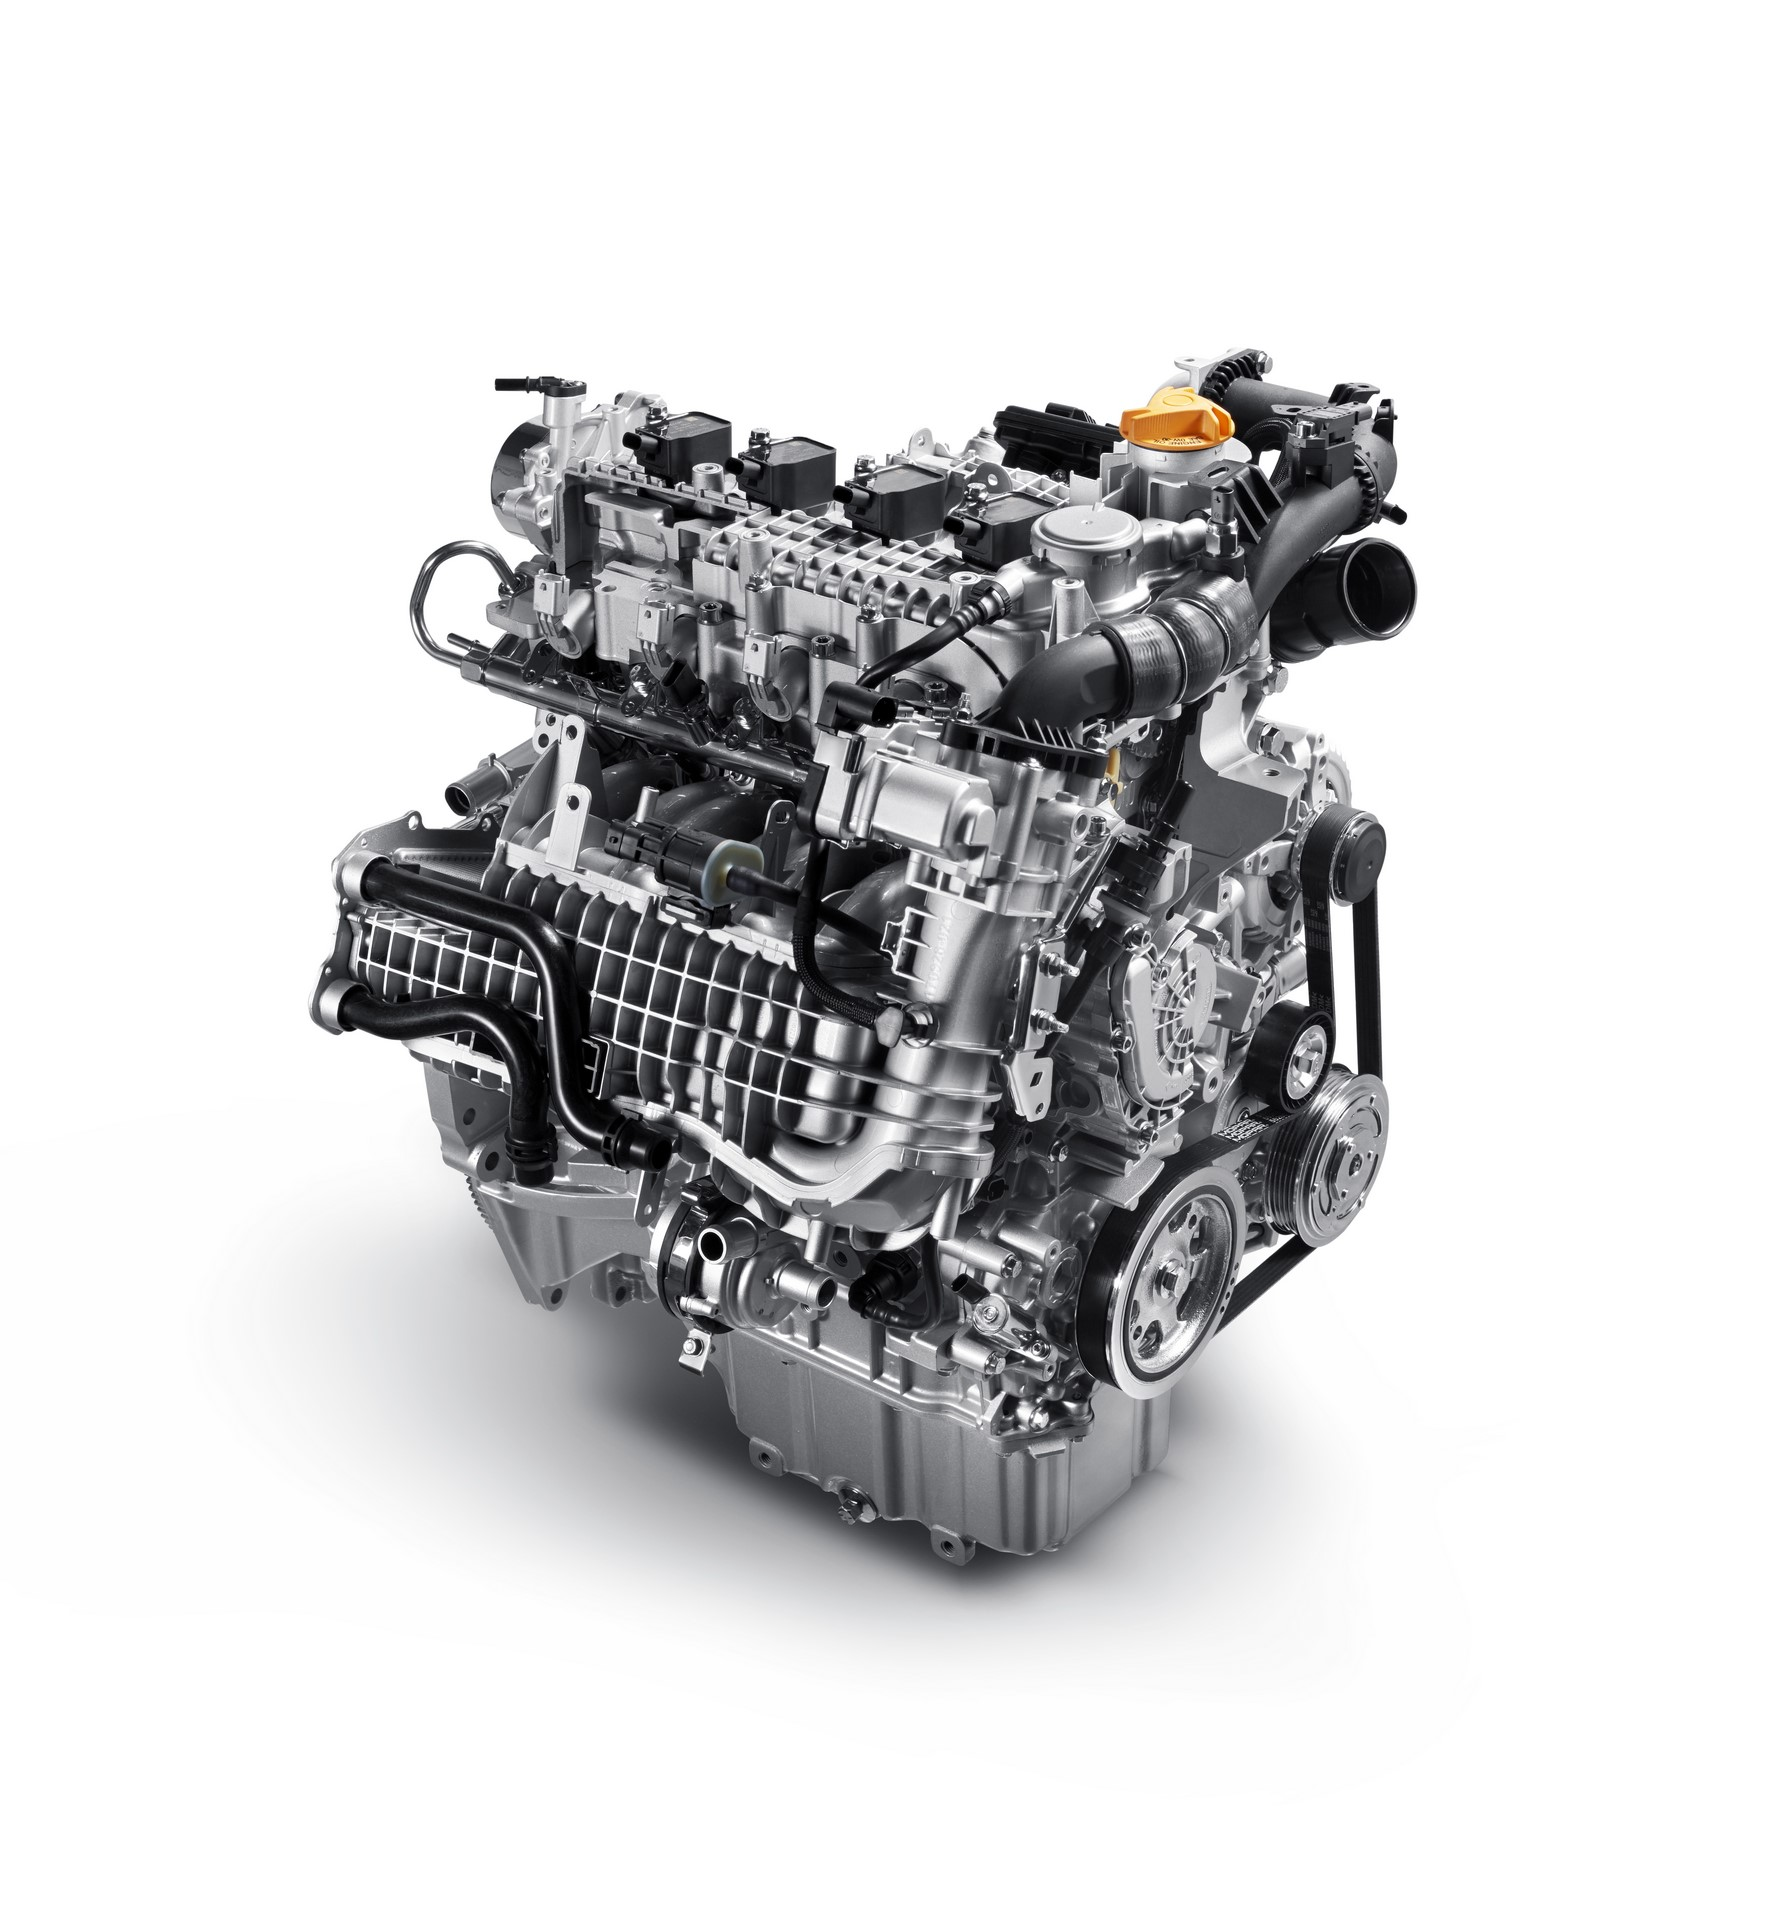 New-13L-Turbo-4-cylinder-150HP_15